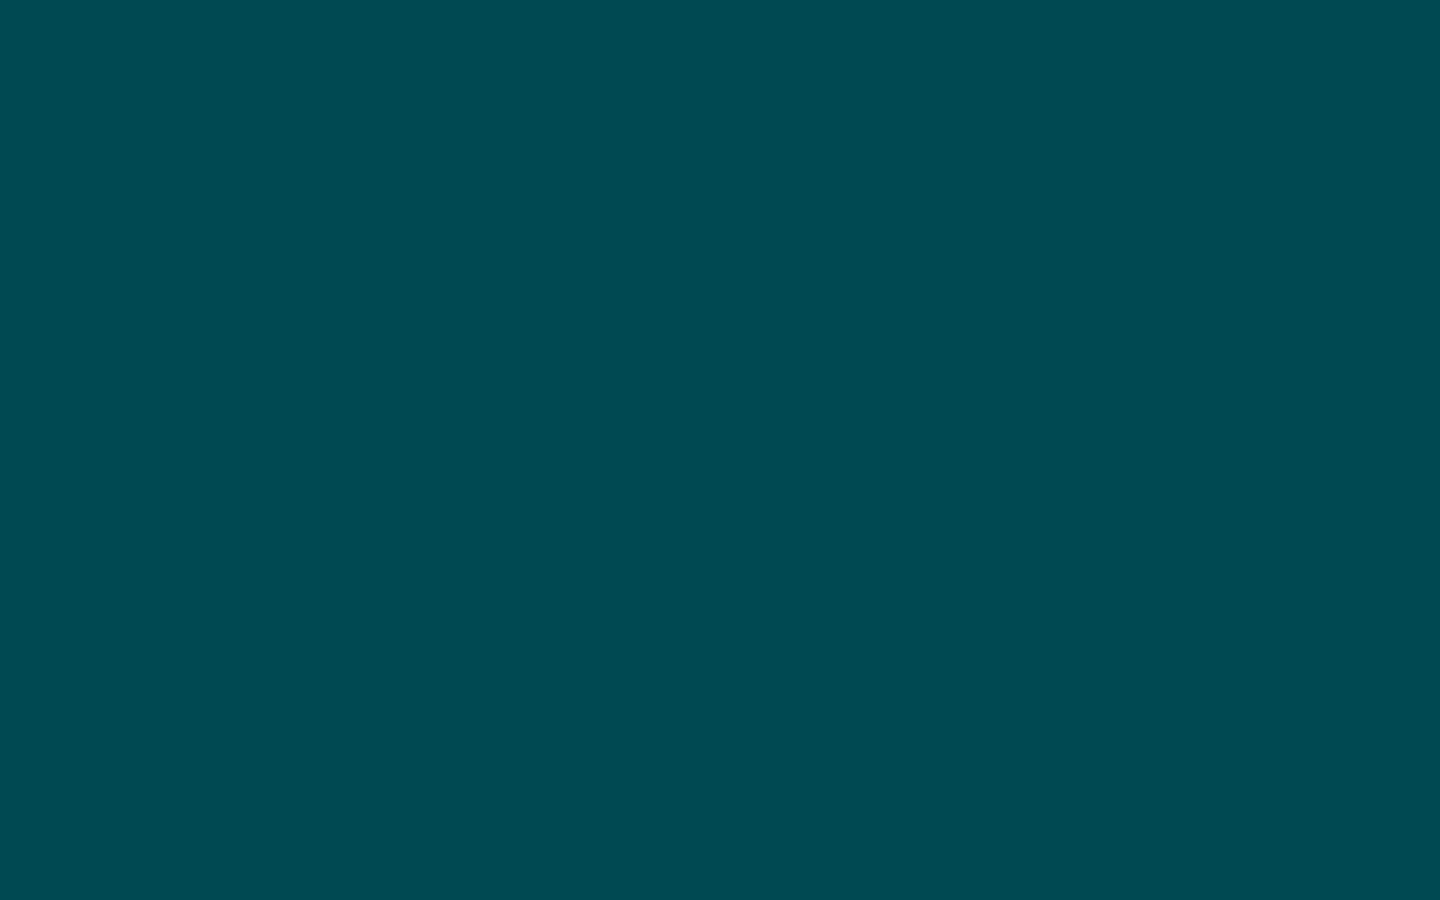 1440x900 Midnight Green Solid Color Background